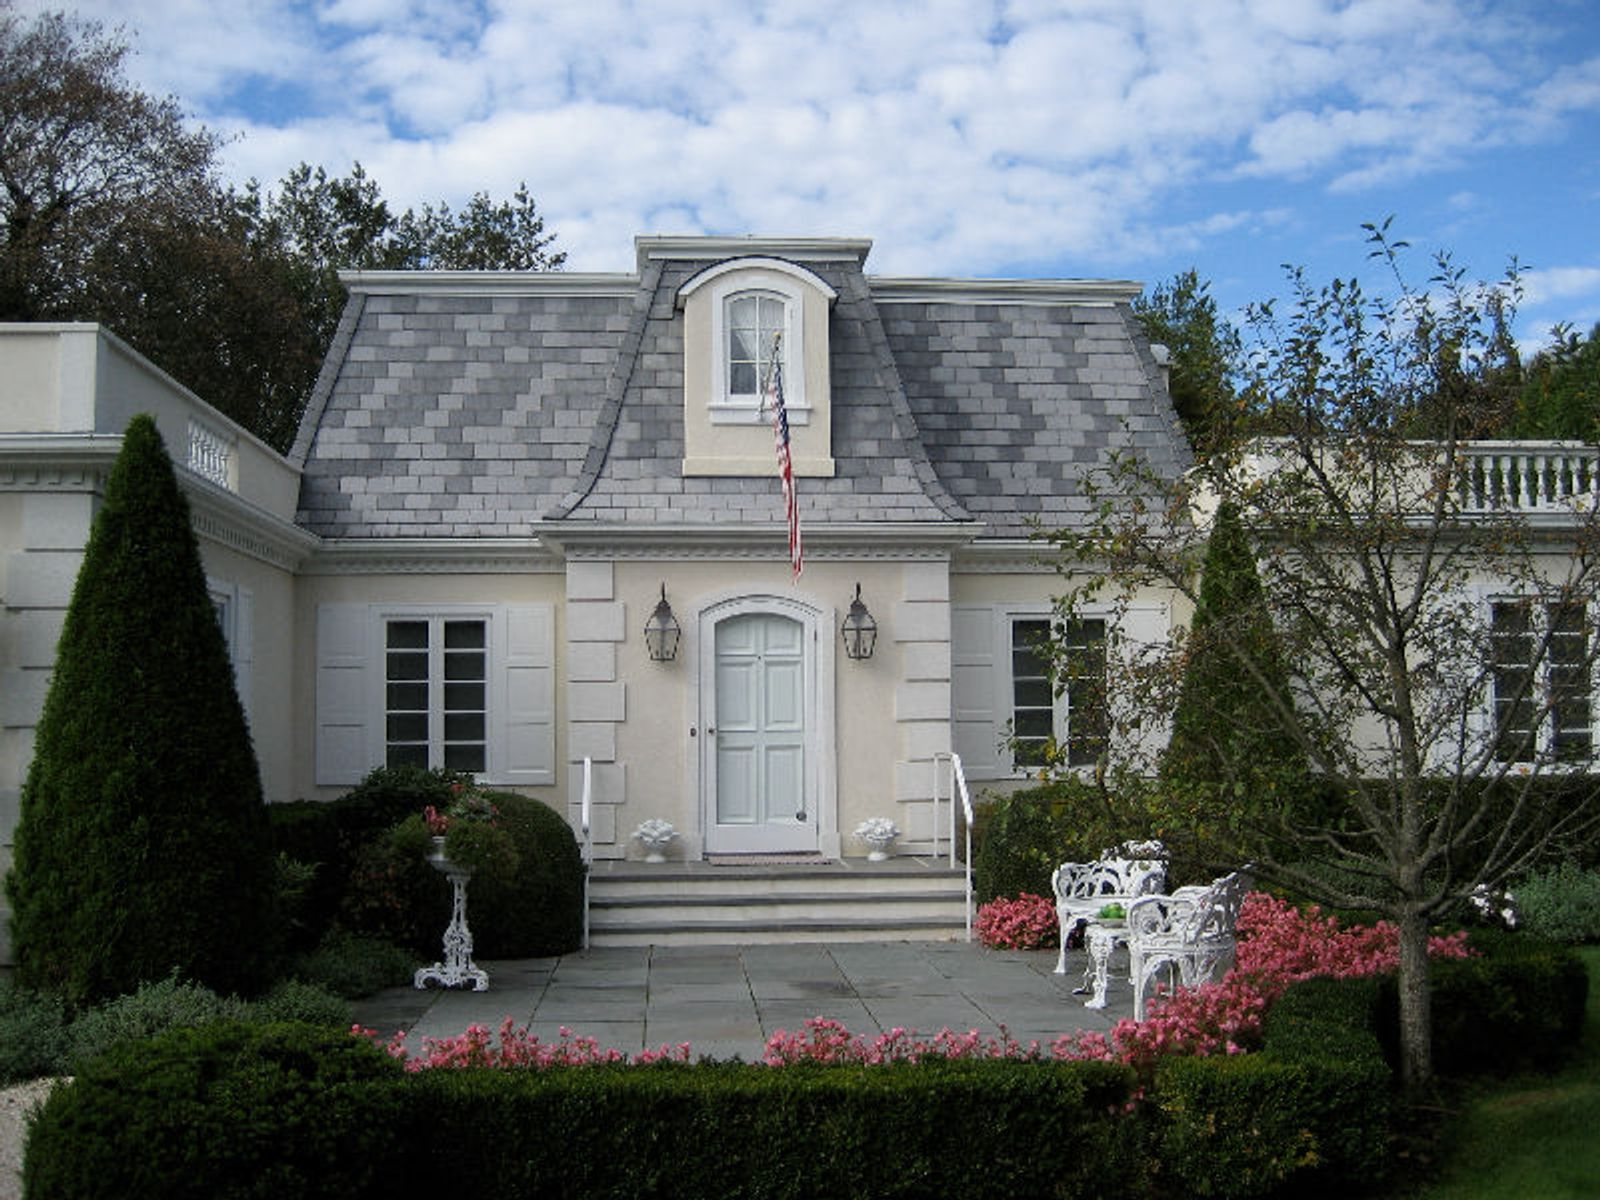 Lovely Village Home - Estate Section, Southampton NY Single Family Home - Hamptons Real Estate